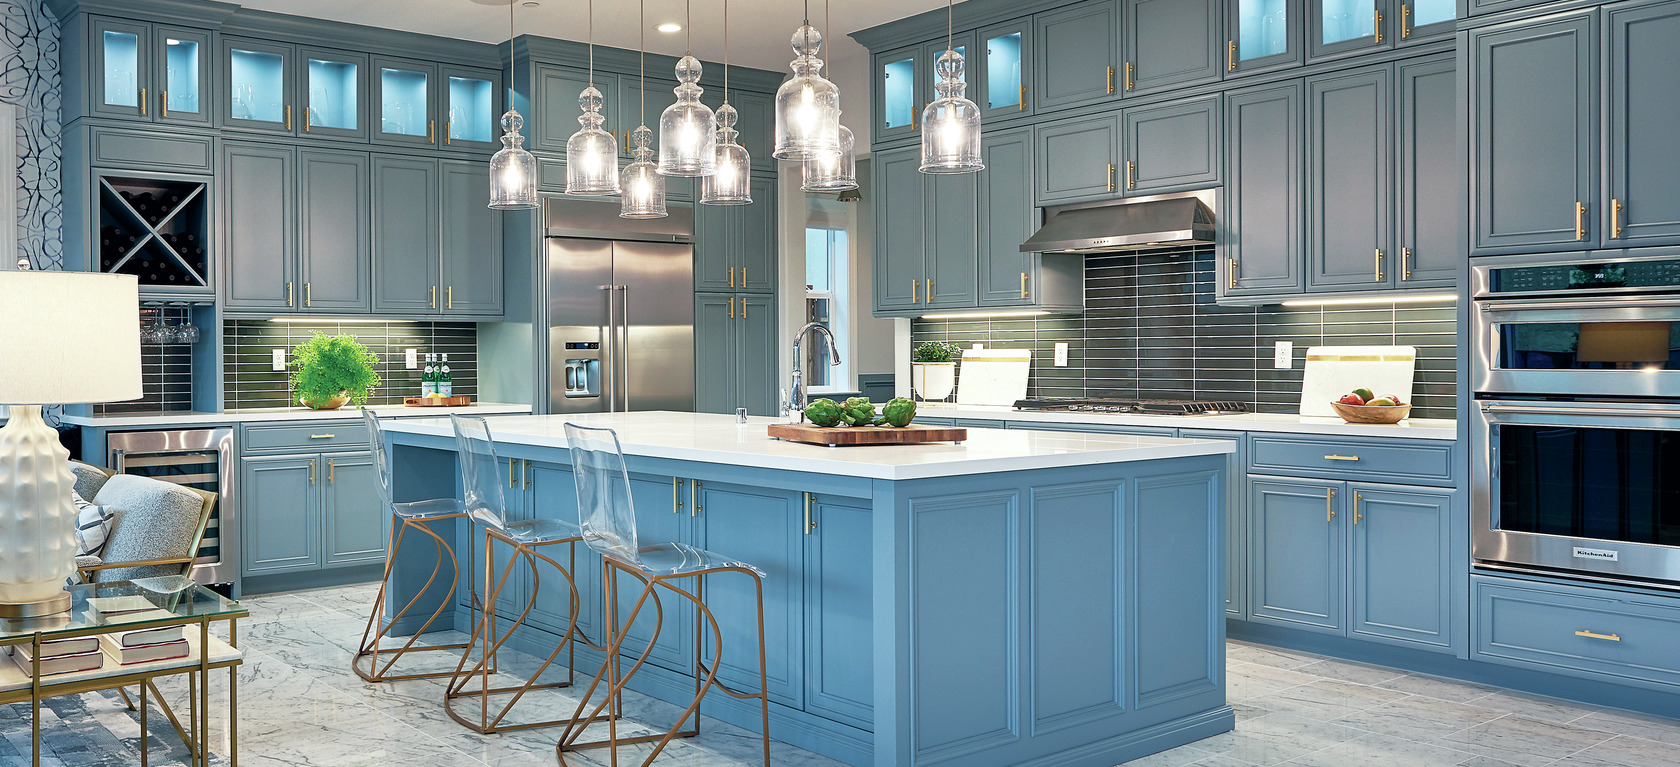 Blue cabinets and kitchen island